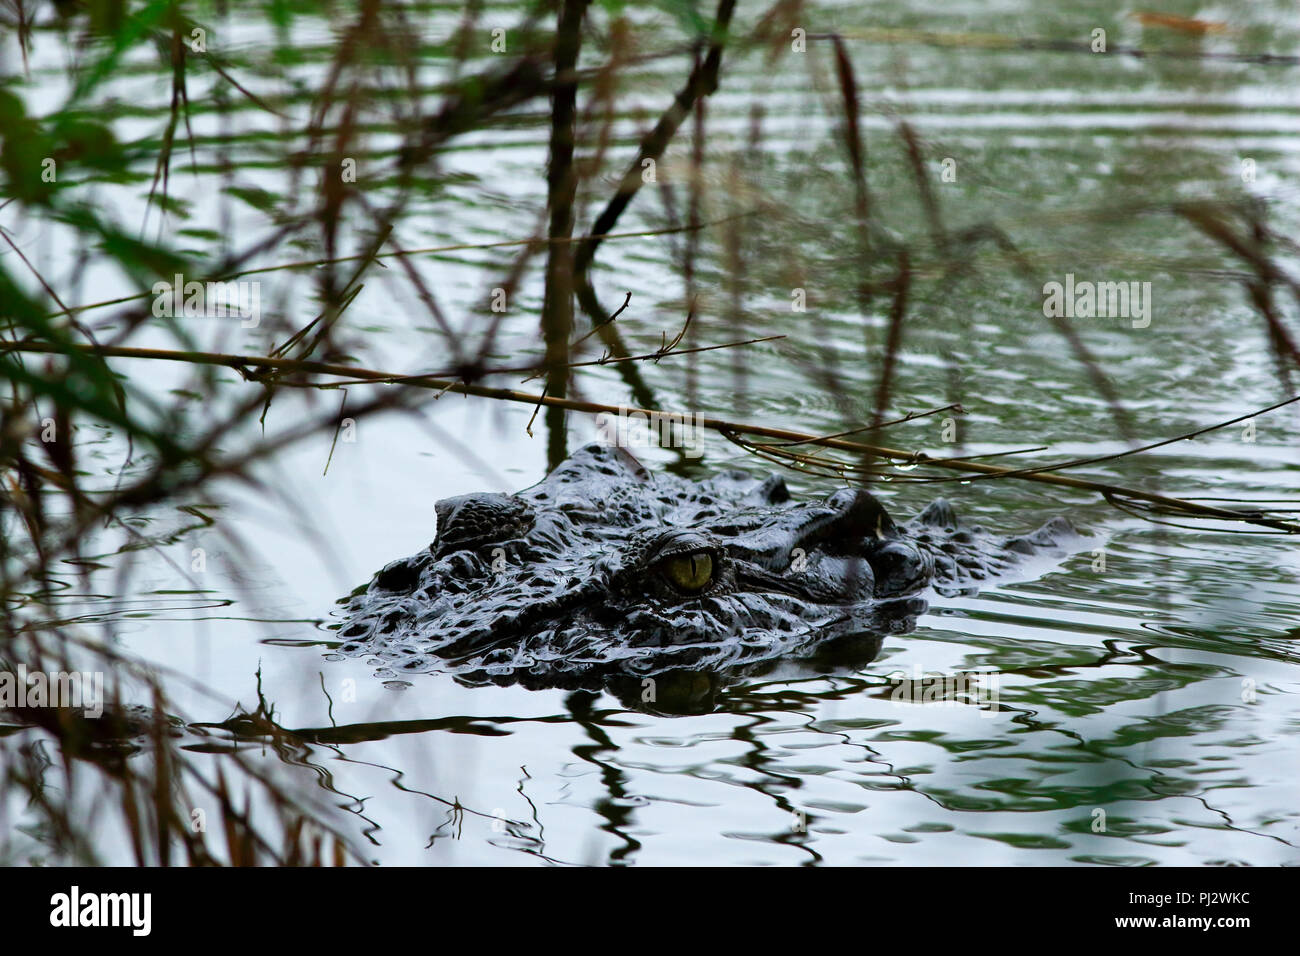 A Salt-water crocodile at crocodile breeding centre in the Sunderbans. It was established in Koromjol area of Mongla upazila in East Sundarbans Divisi - Stock Image